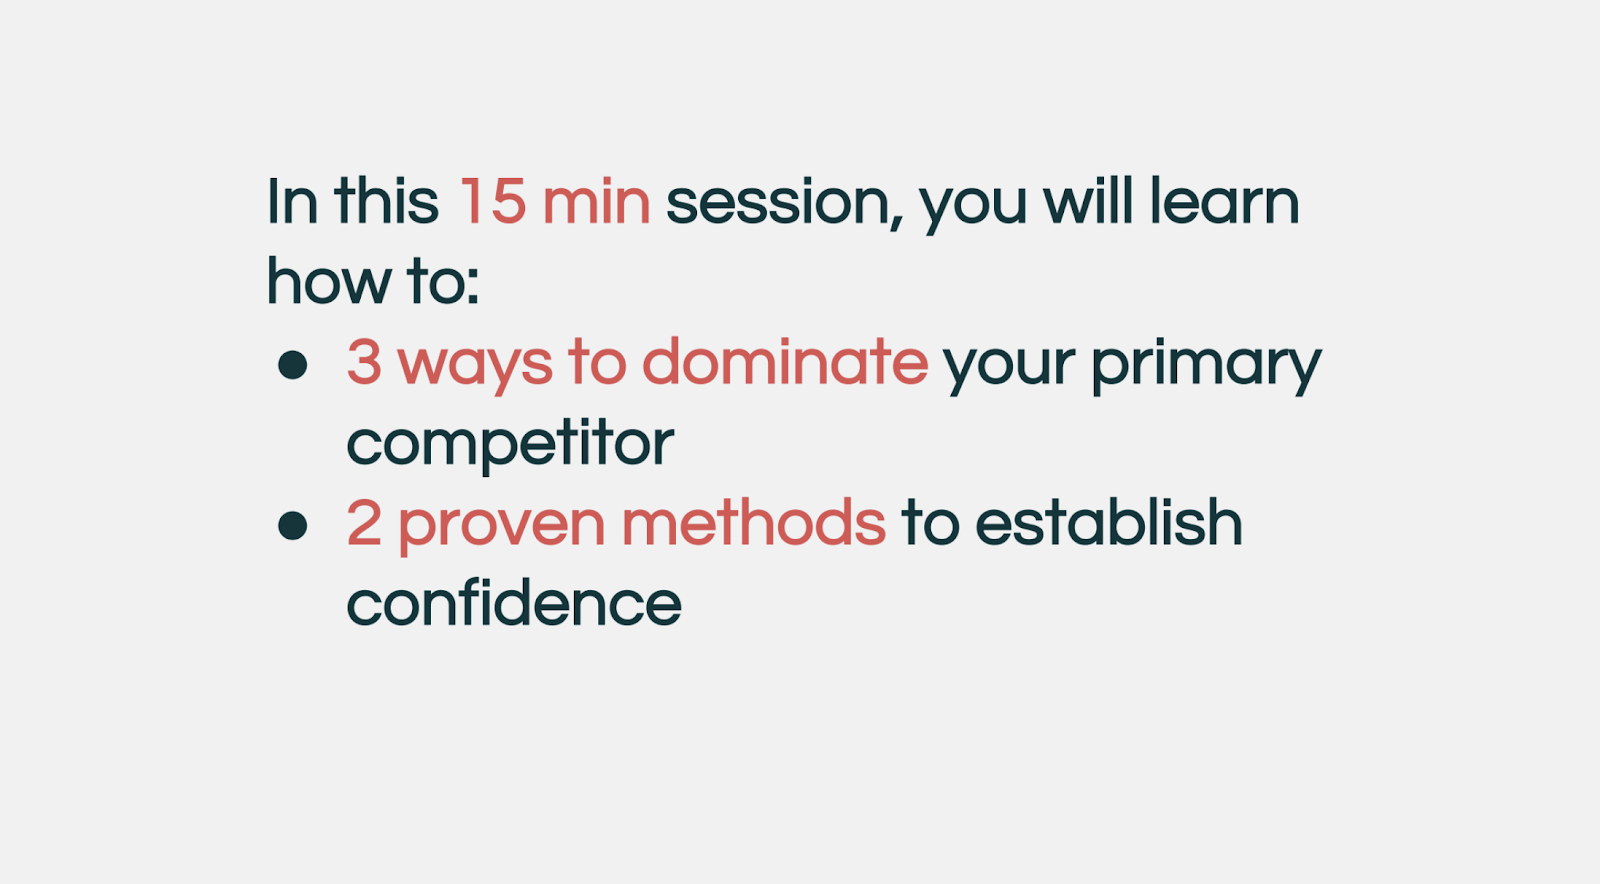 in this 15 minute session, you will learn how to...